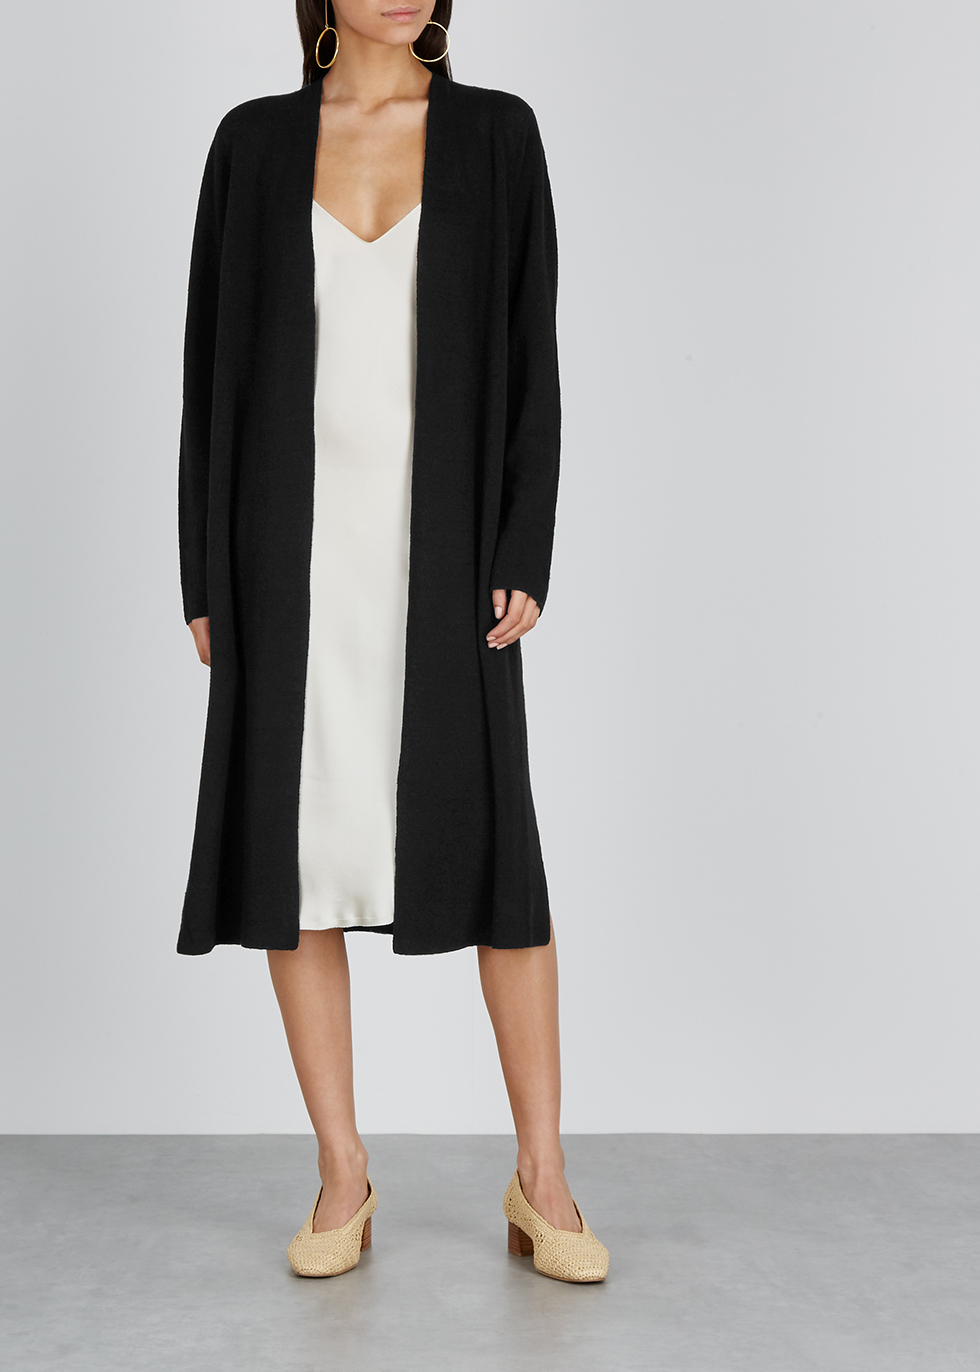 Black linen-blend cardigan - EILEEN FISHER